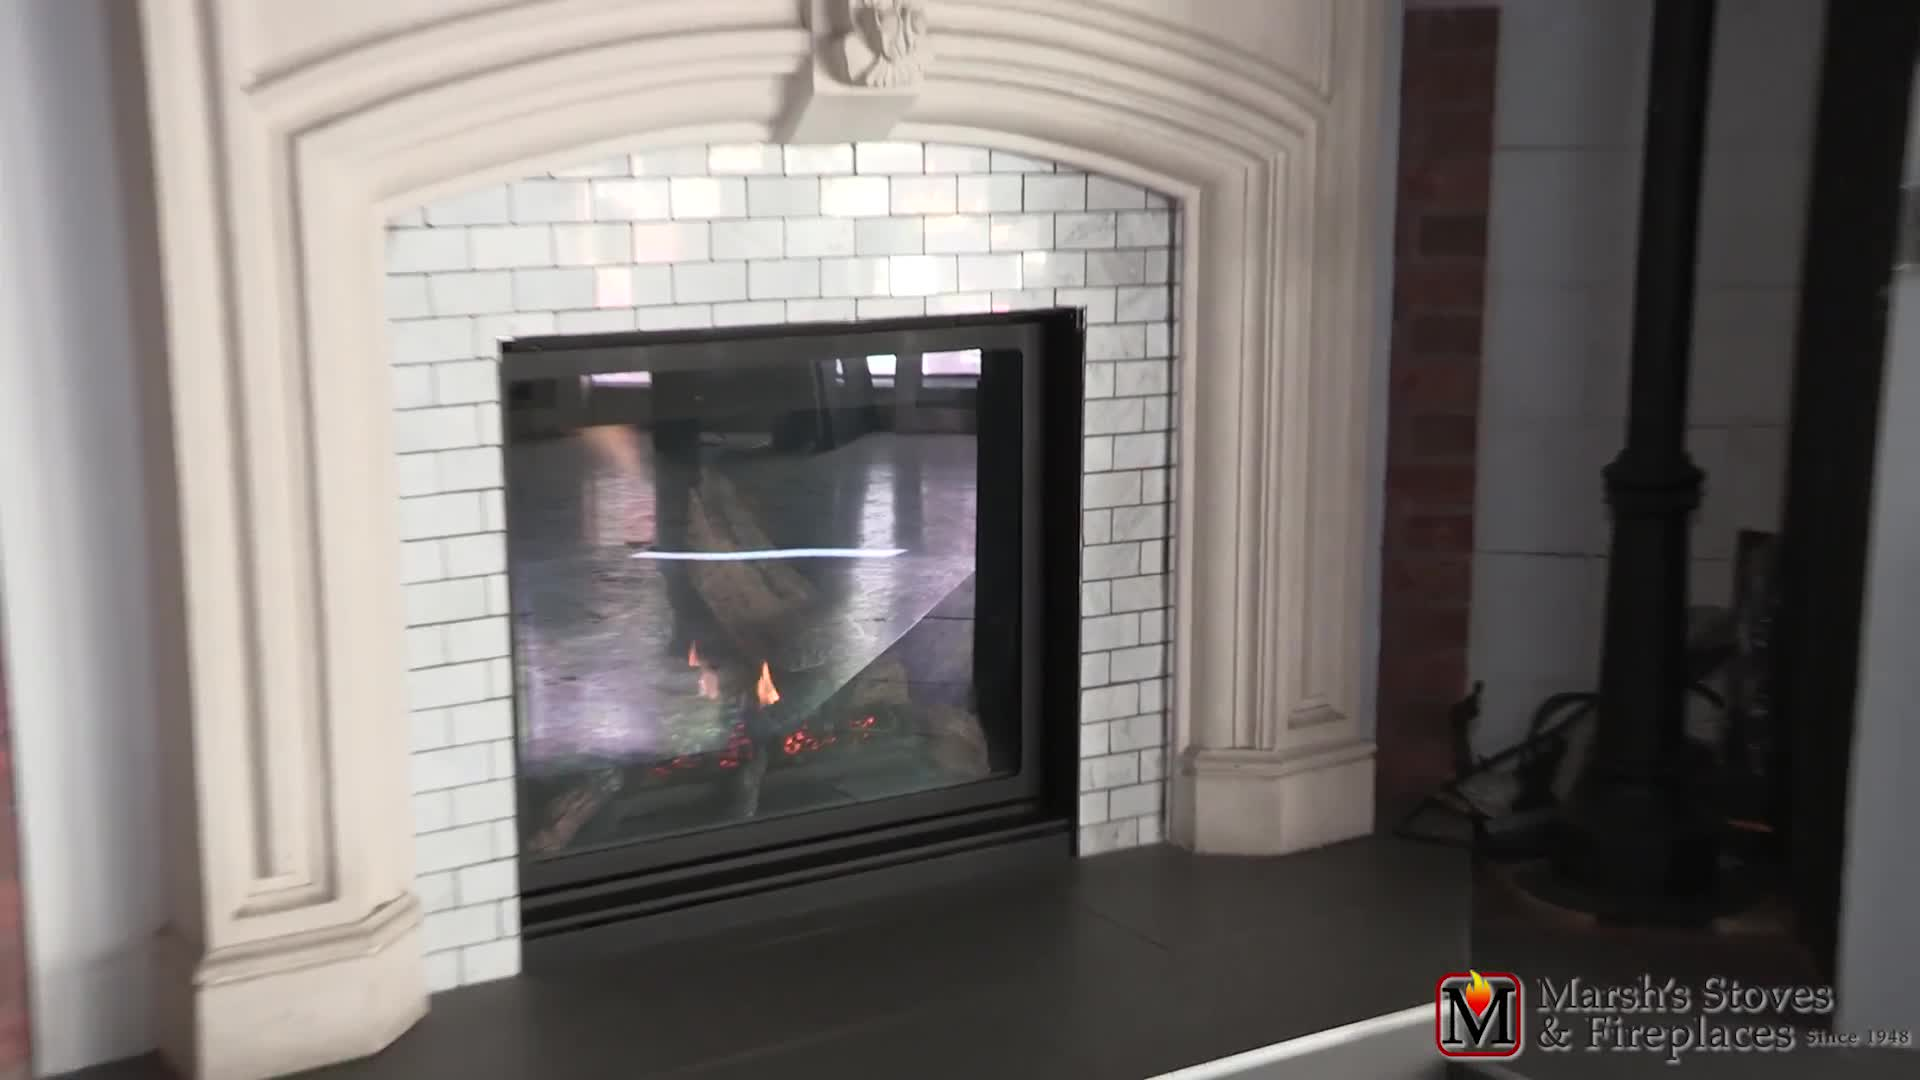 Marsh's Stoves & Fireplaces - Fireplaces - 416-762-4582